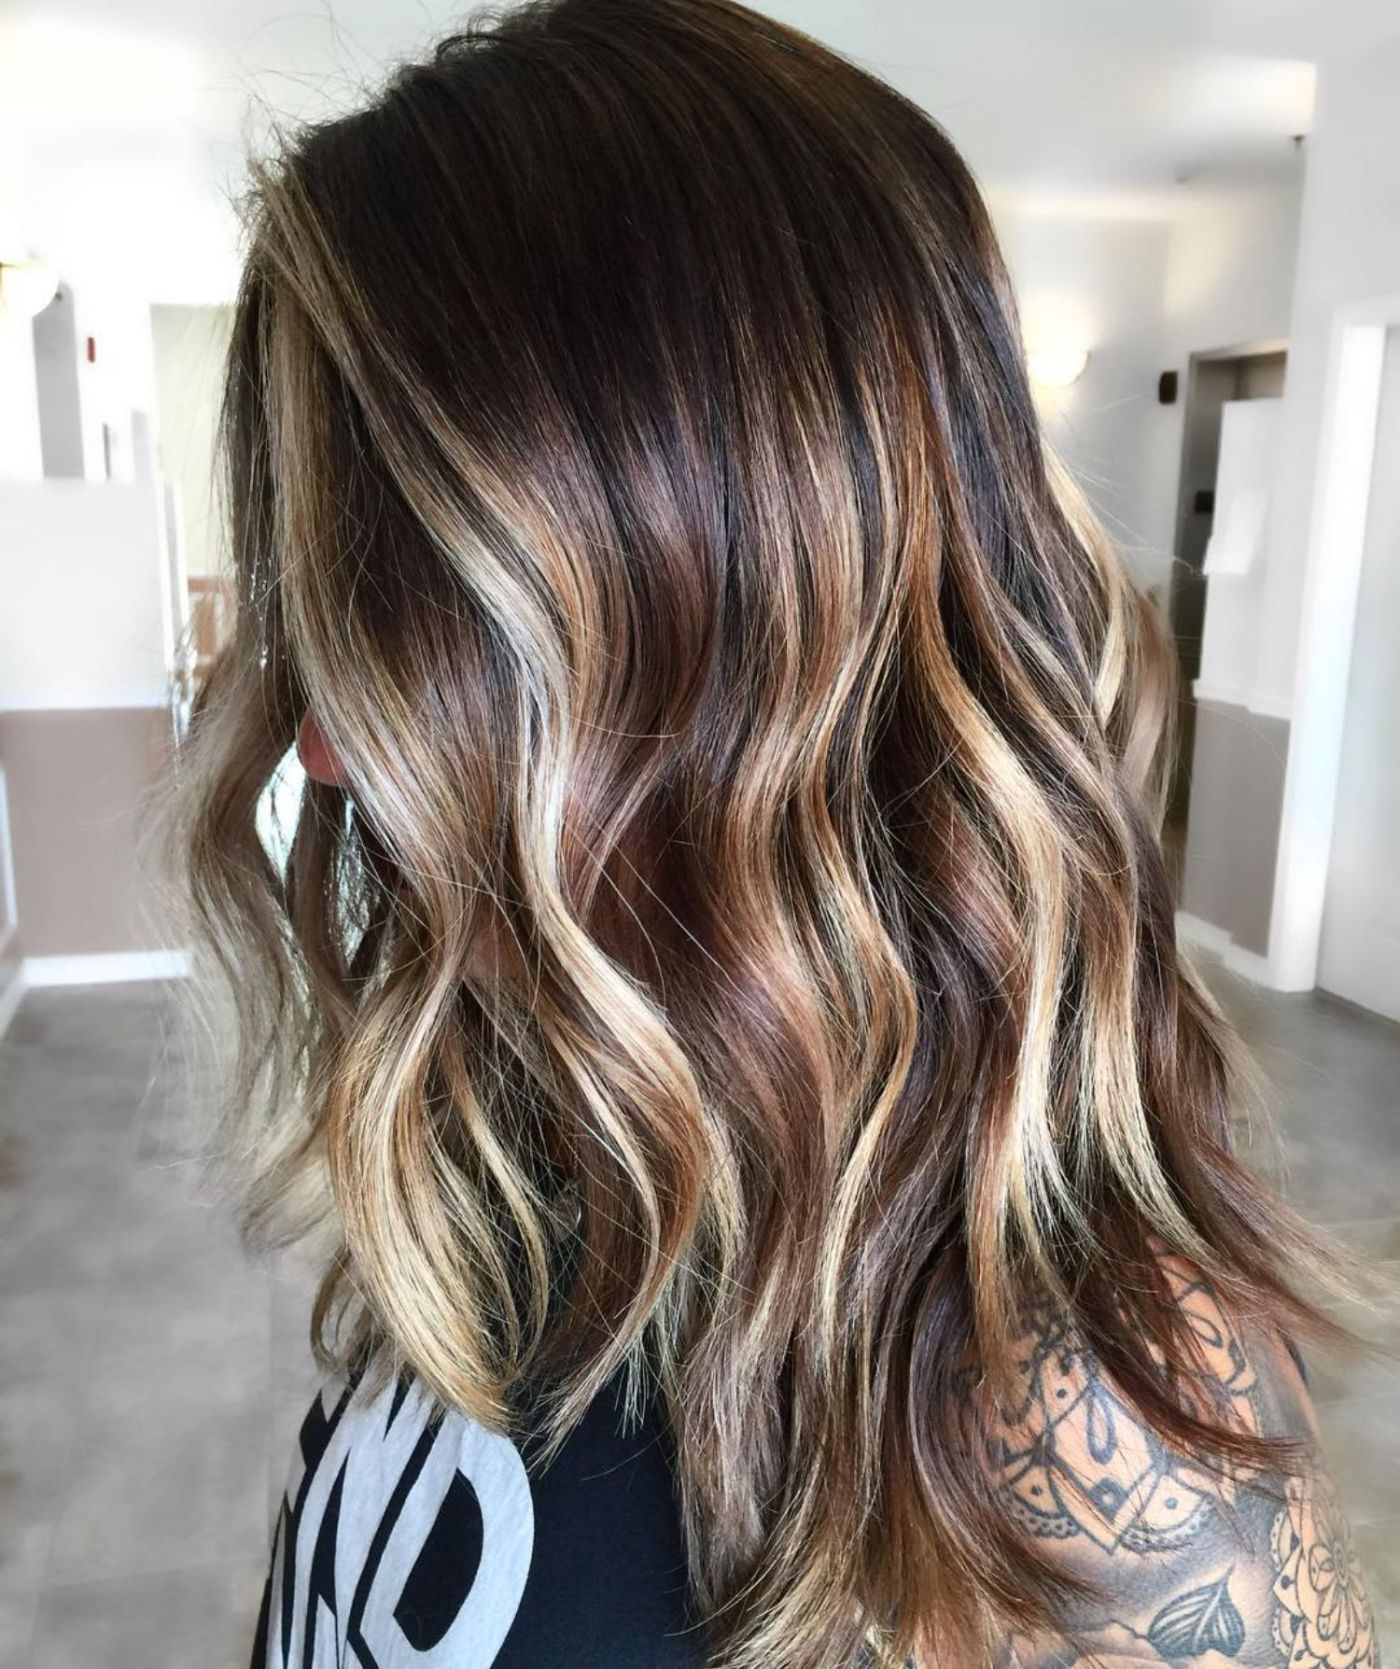 20 Natural Looking Brunette Balayage Styles In 2020 Balayage